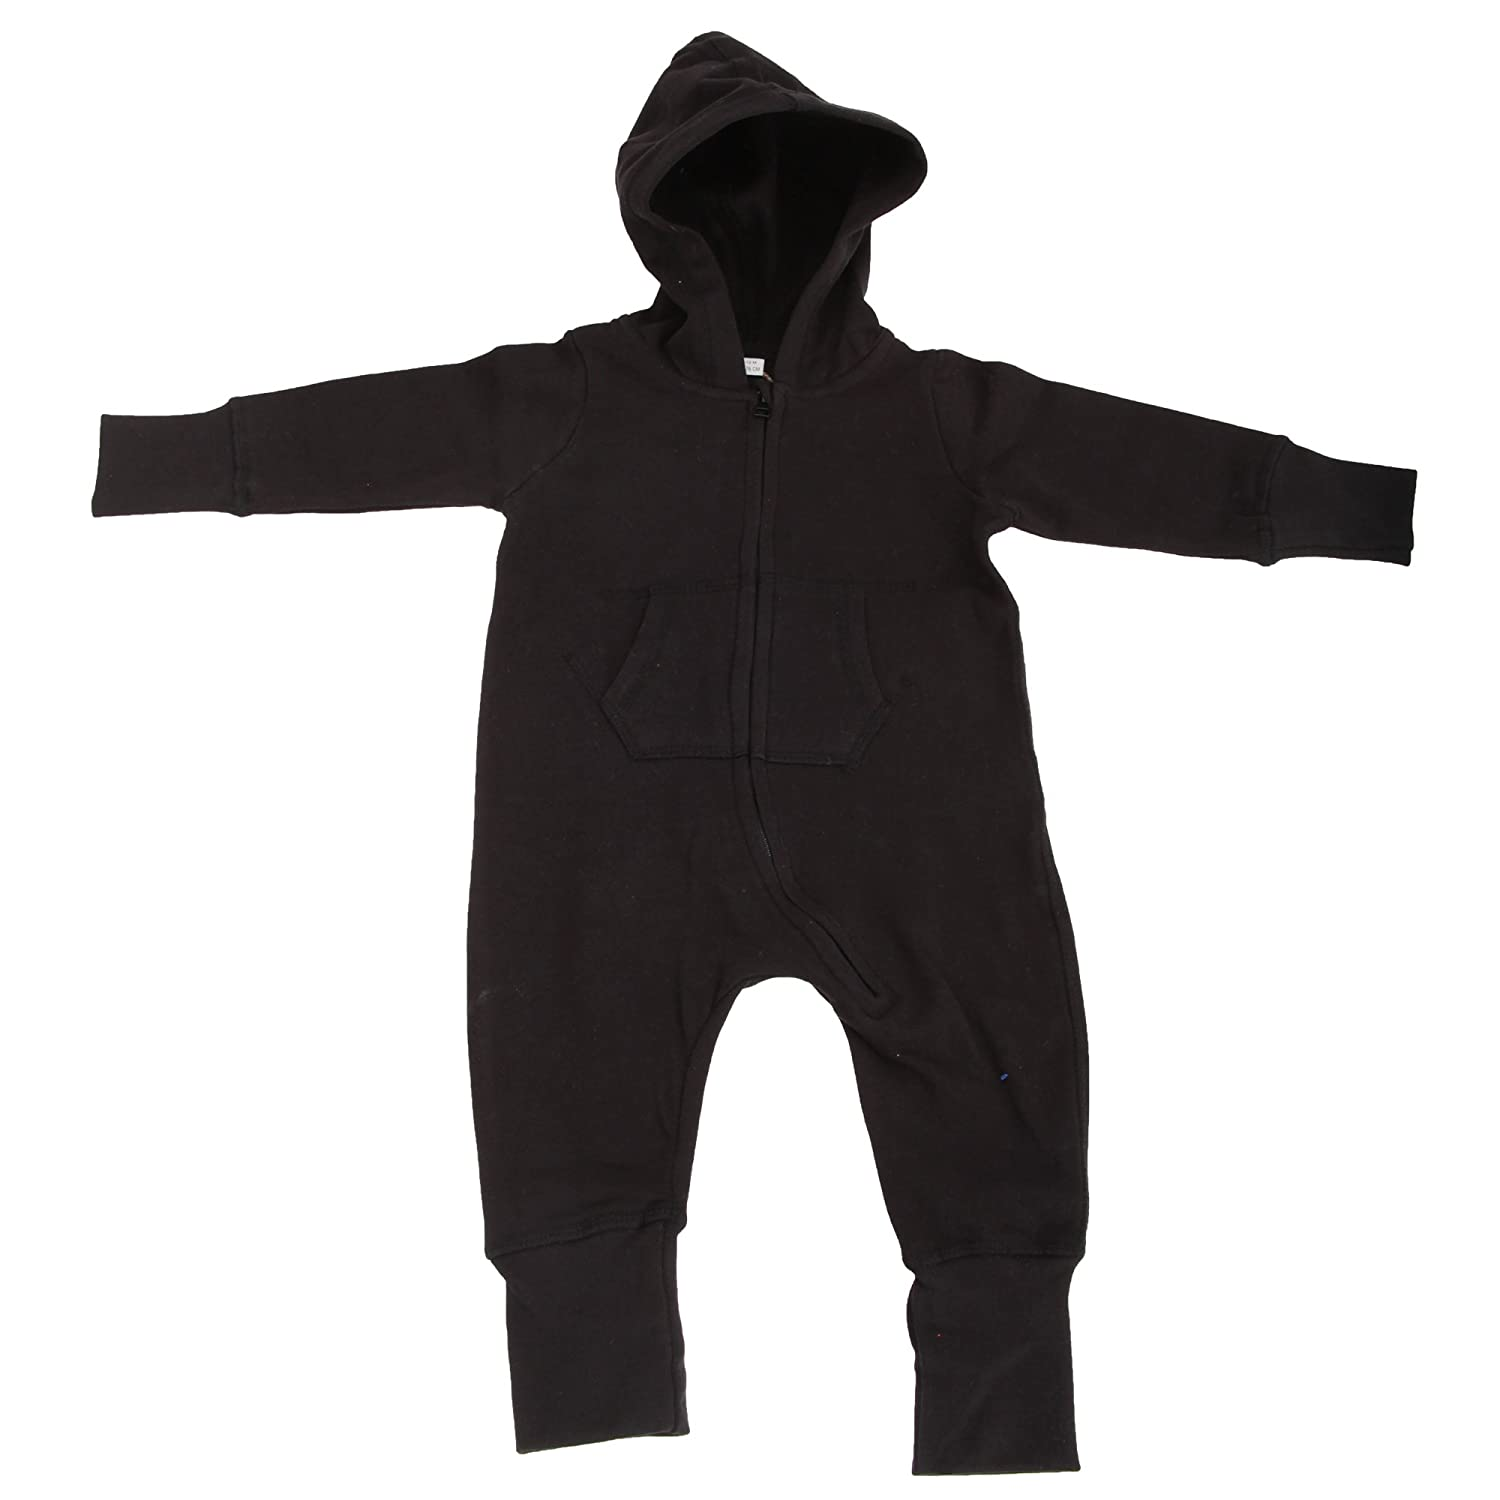 Babybugz Plain Baby All In One / Sleepsuit (6-12) (Black) UTBC2523_5